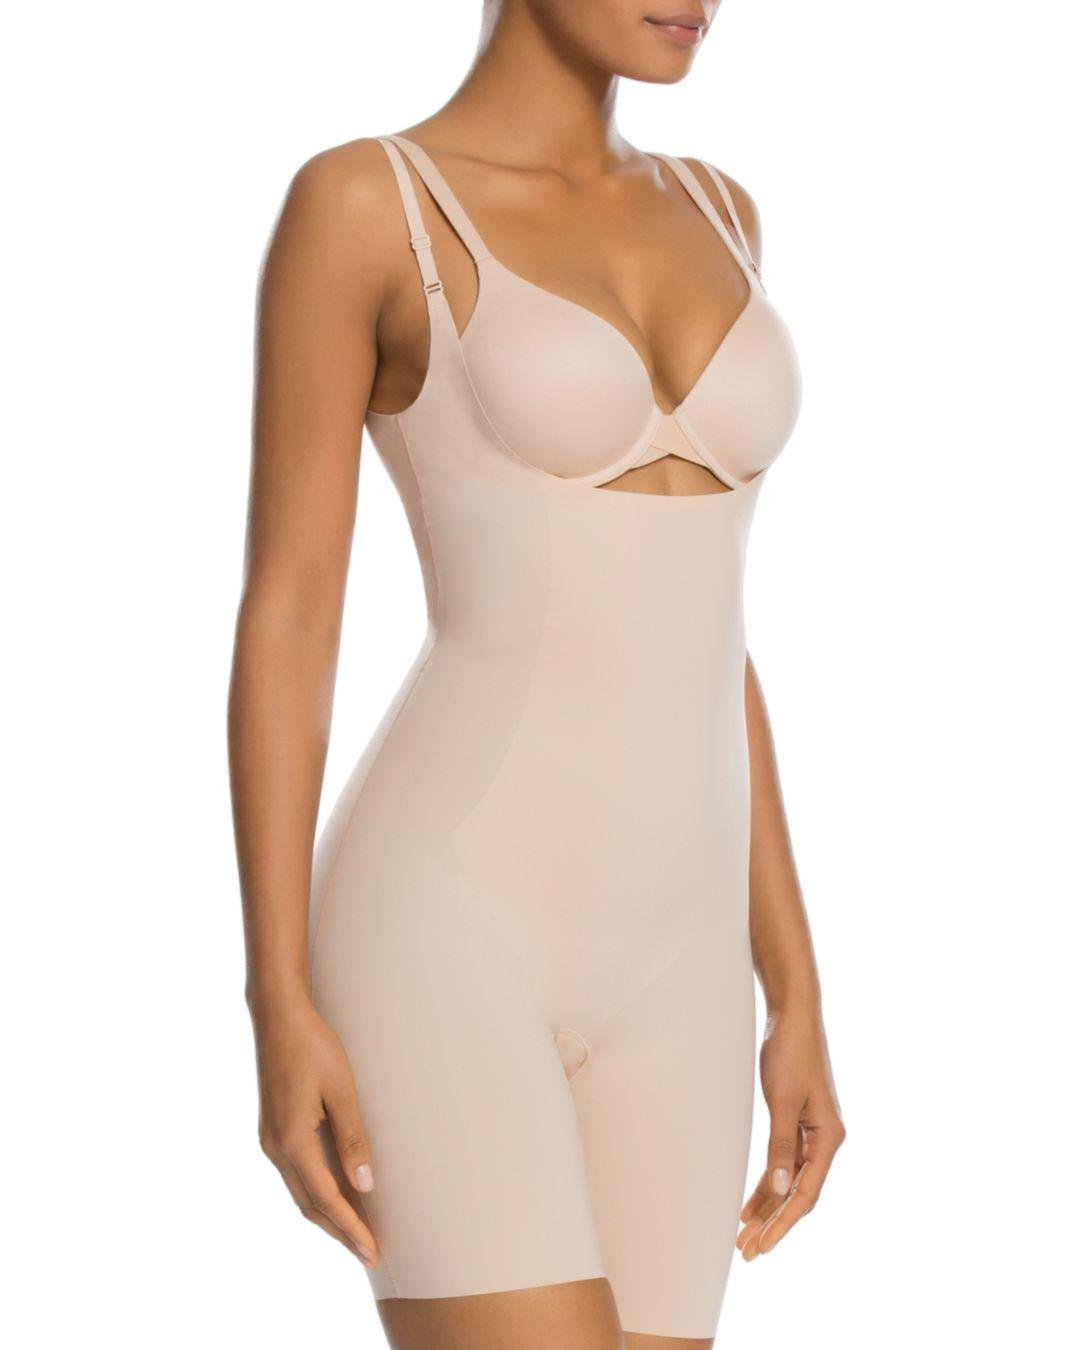 08d0b83c03201 Spanx Thinstincts Open-bust Mid-thigh Bodysuit in Natural - Lyst